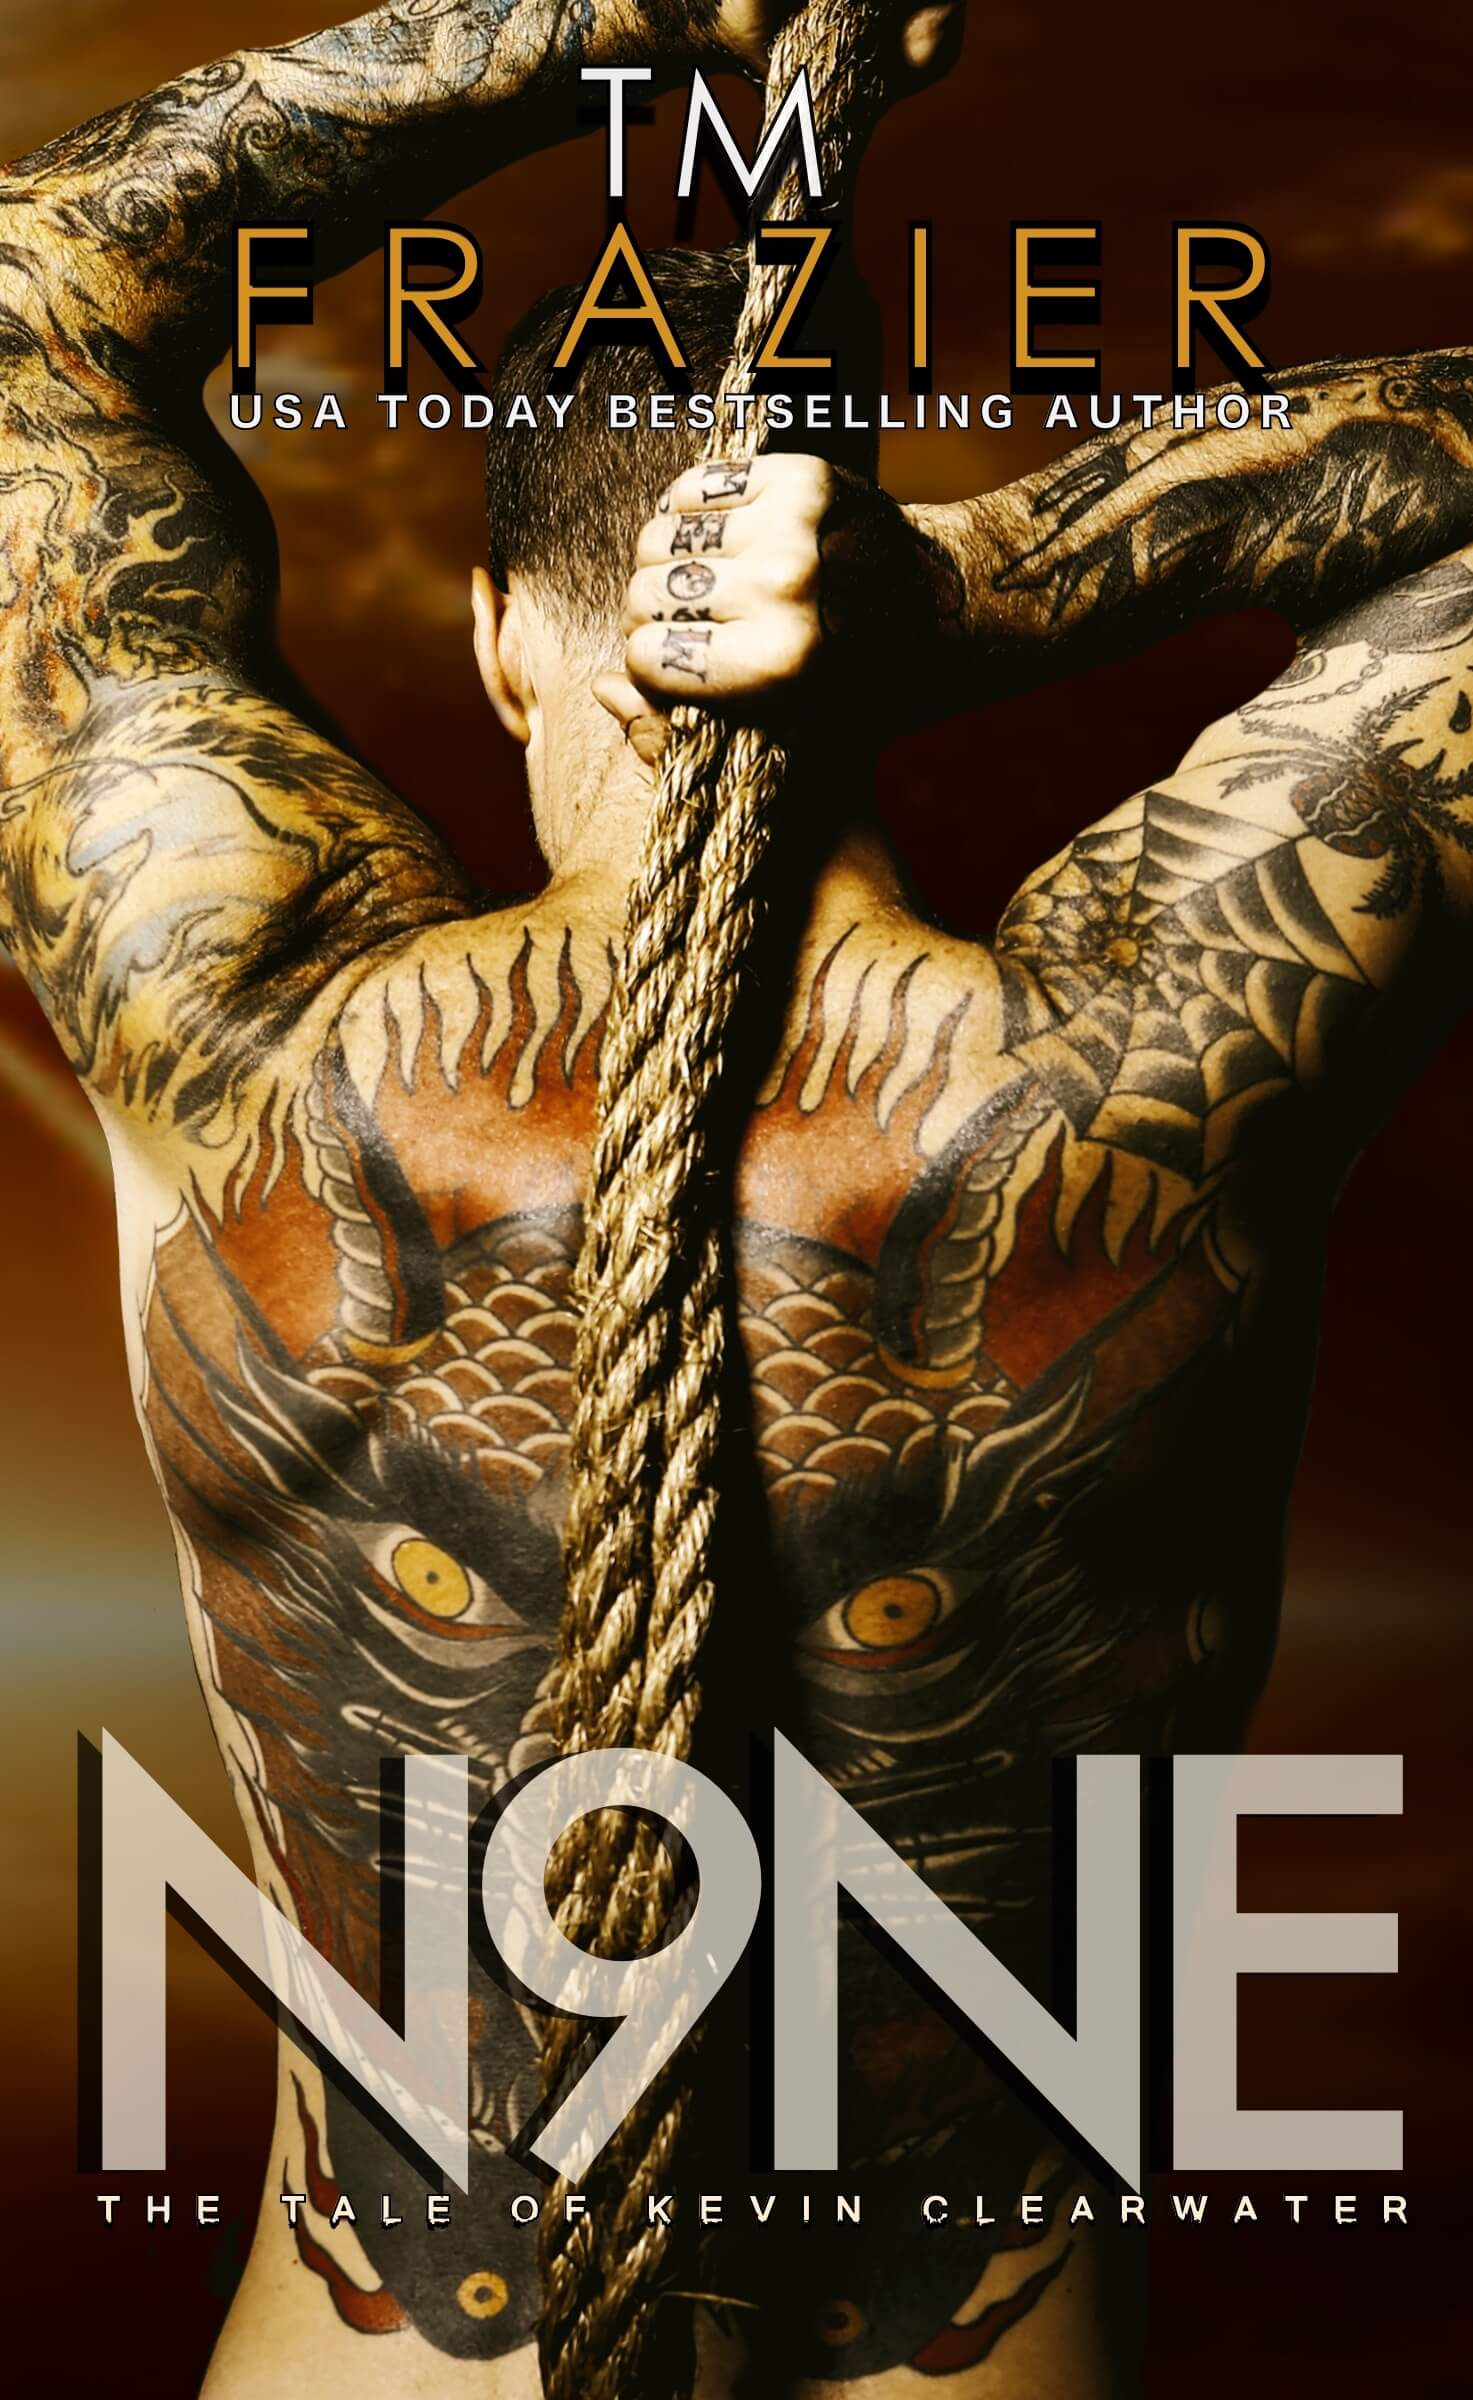 Cover Reveal * Nine: The Tale of Kevin Clearwater by TM Frazier * Coming June 18th * PreOrder Now!